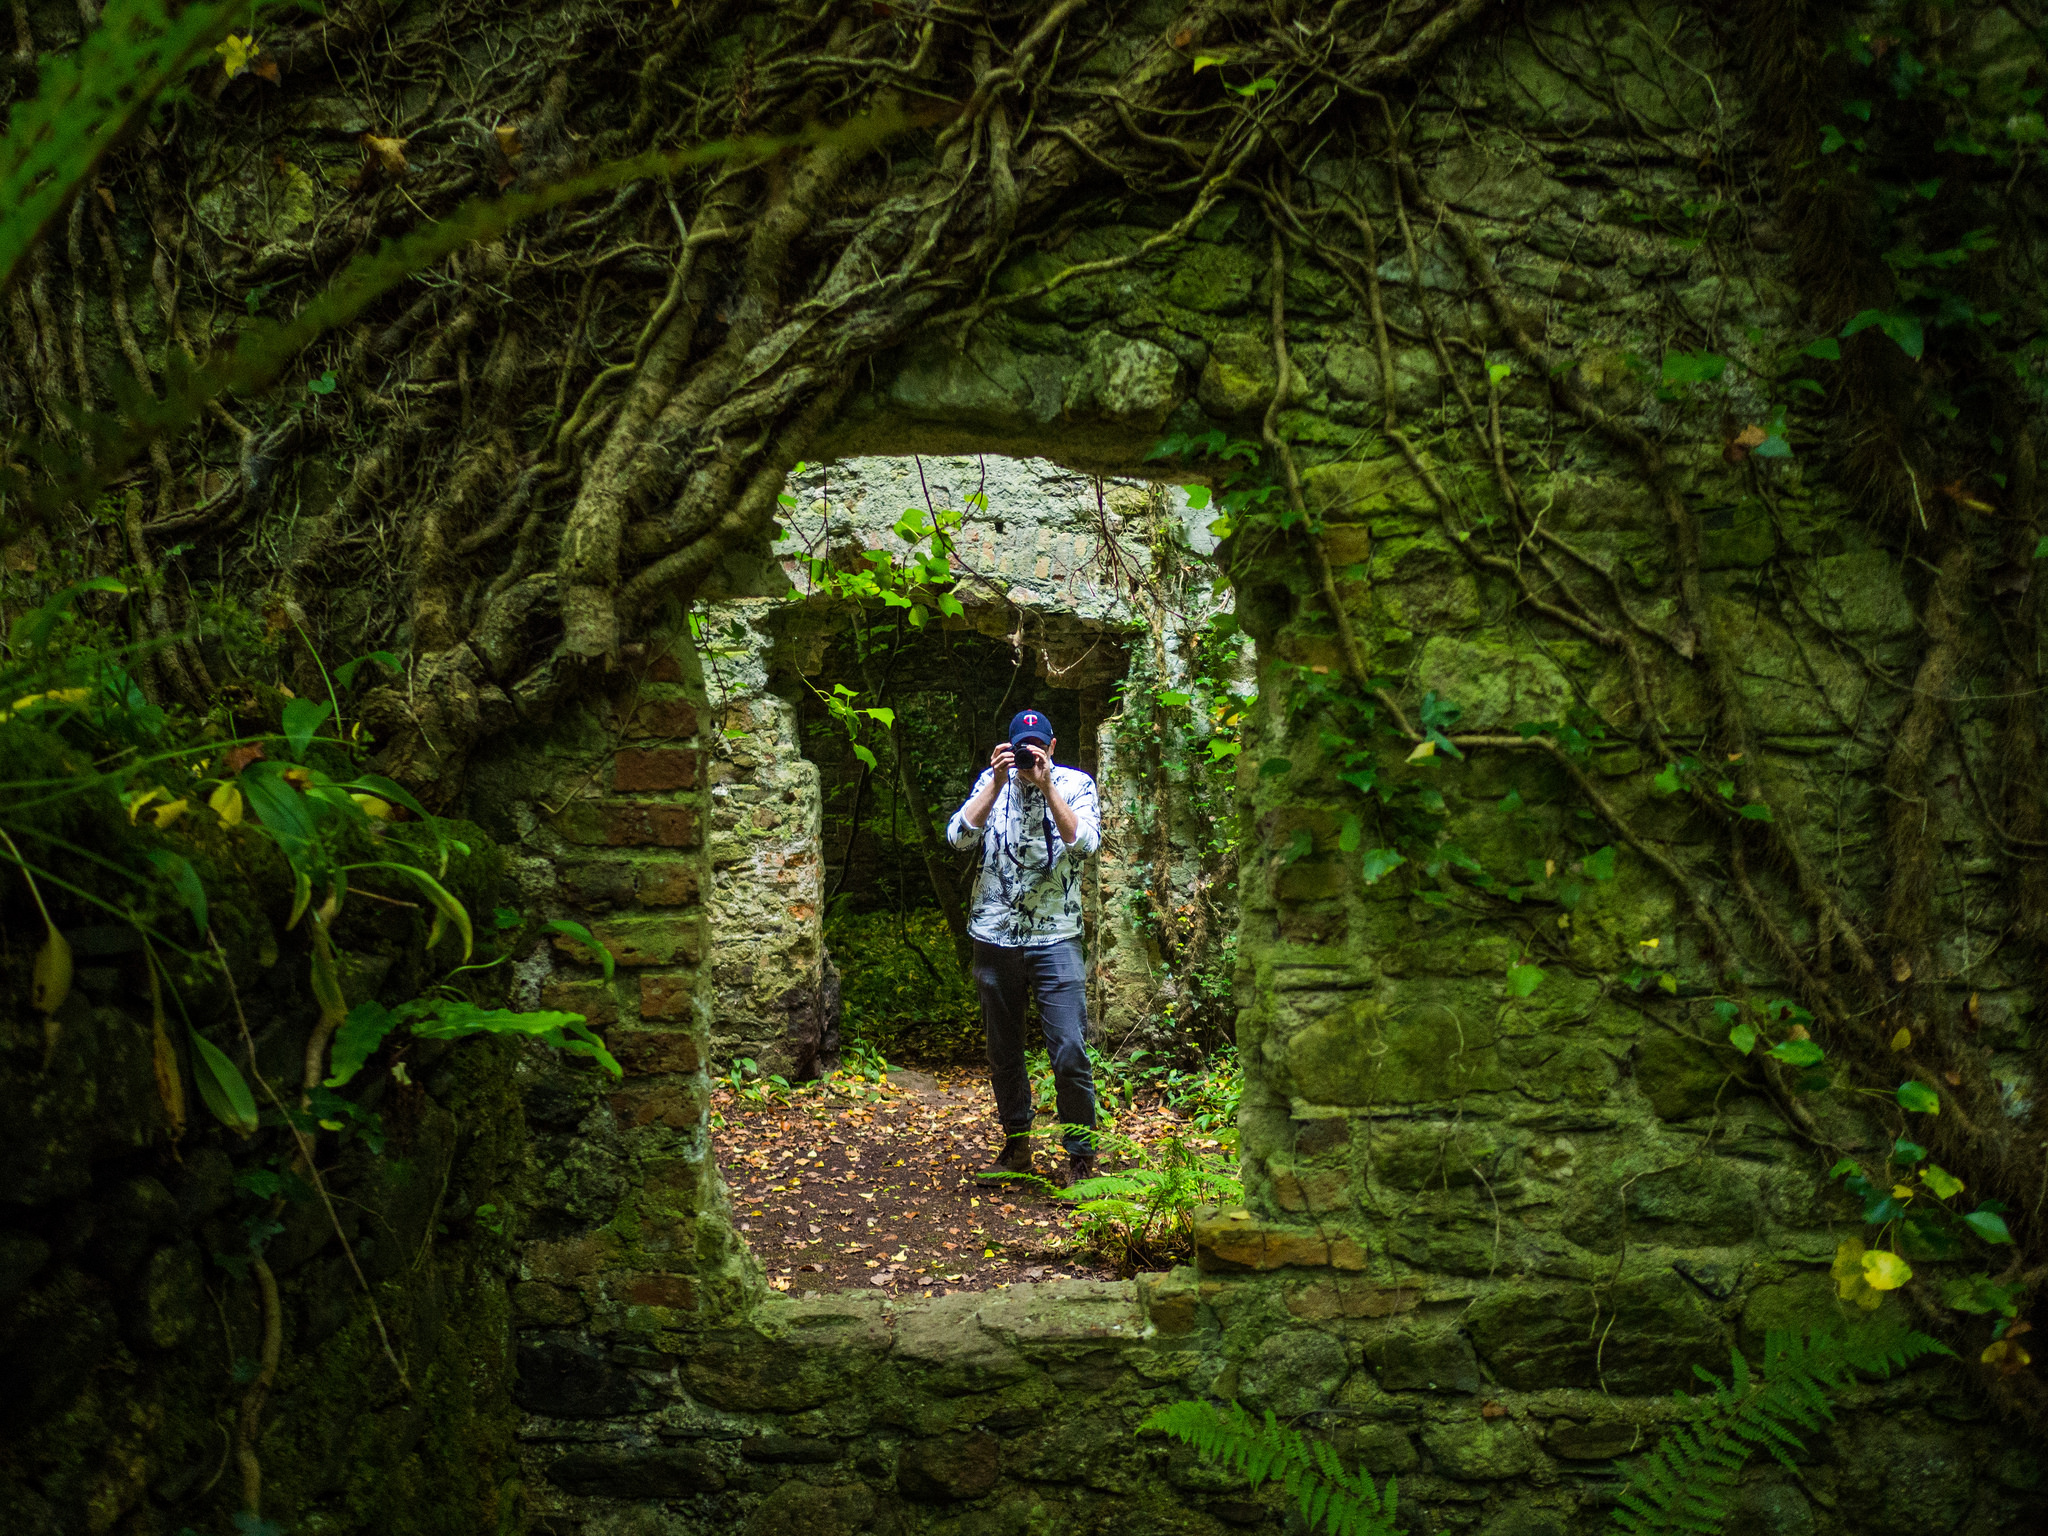 Light Grey Art Lab's Chris Hajny explores an old Monk structure at the Tintern Abbey.